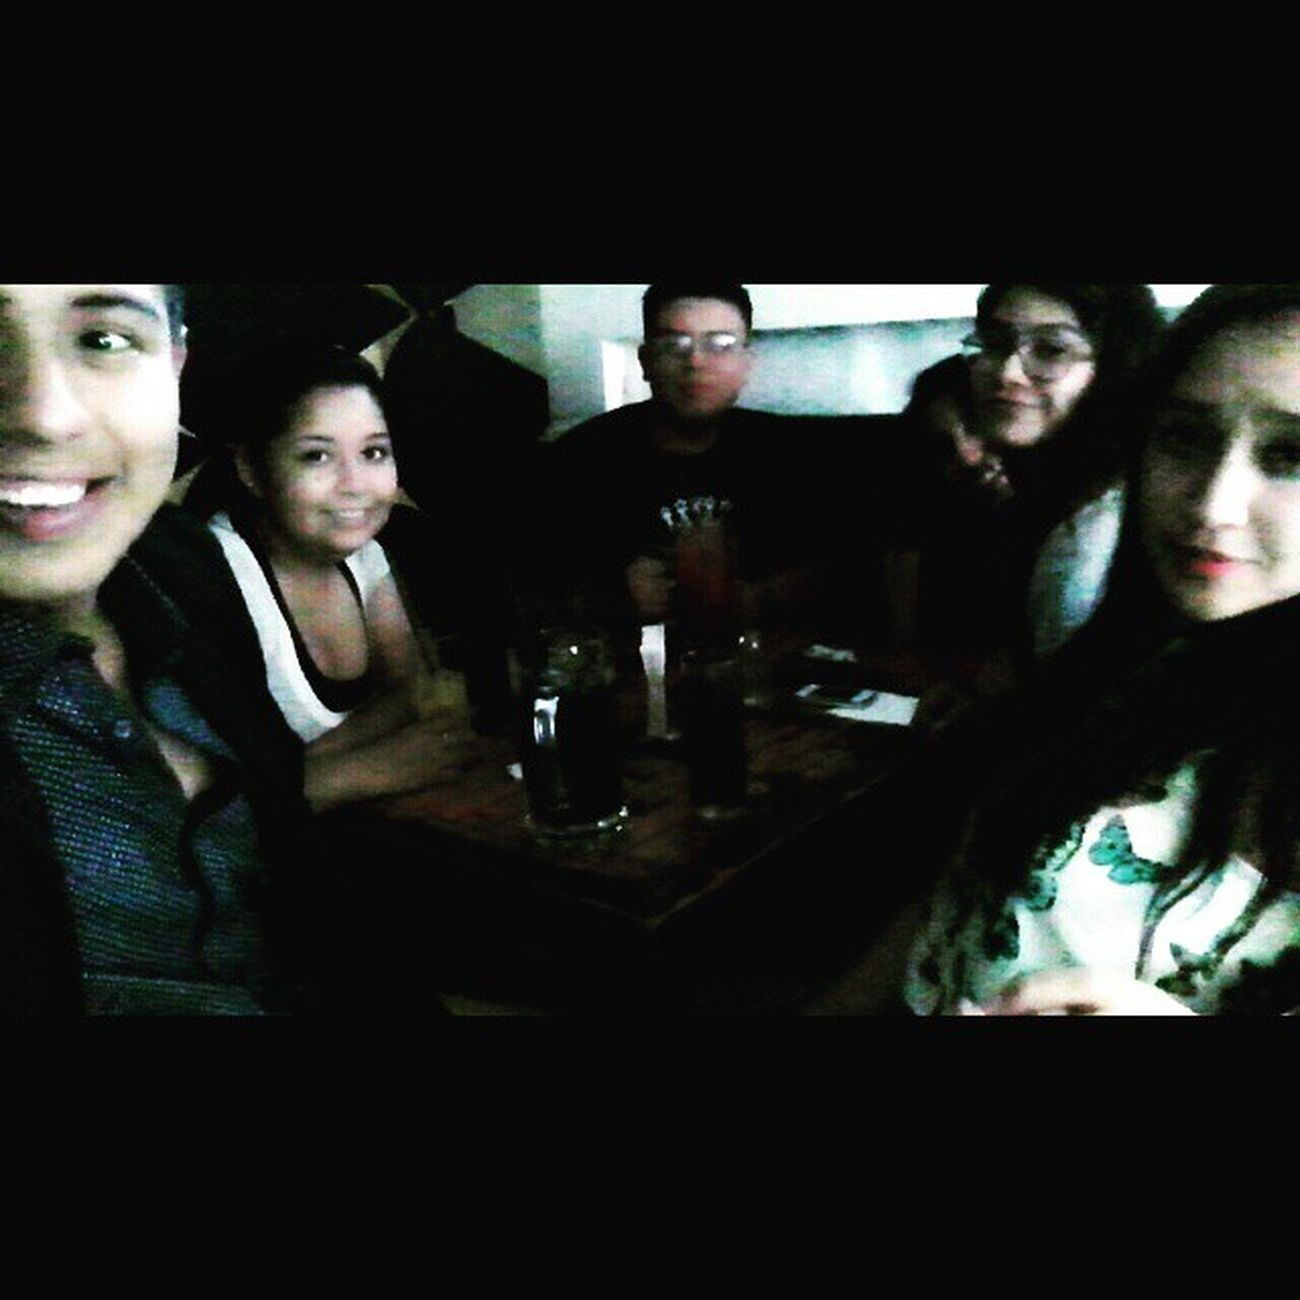 Com meus amizades. Los amo bebés Friend Friends Fun Funny love instagood igers friendship party chill happy cute photooftheday live forever smile bff bf gf best bestfriend lovethem bestfriends goodfriends besties awesome memories goodtimes goodtime